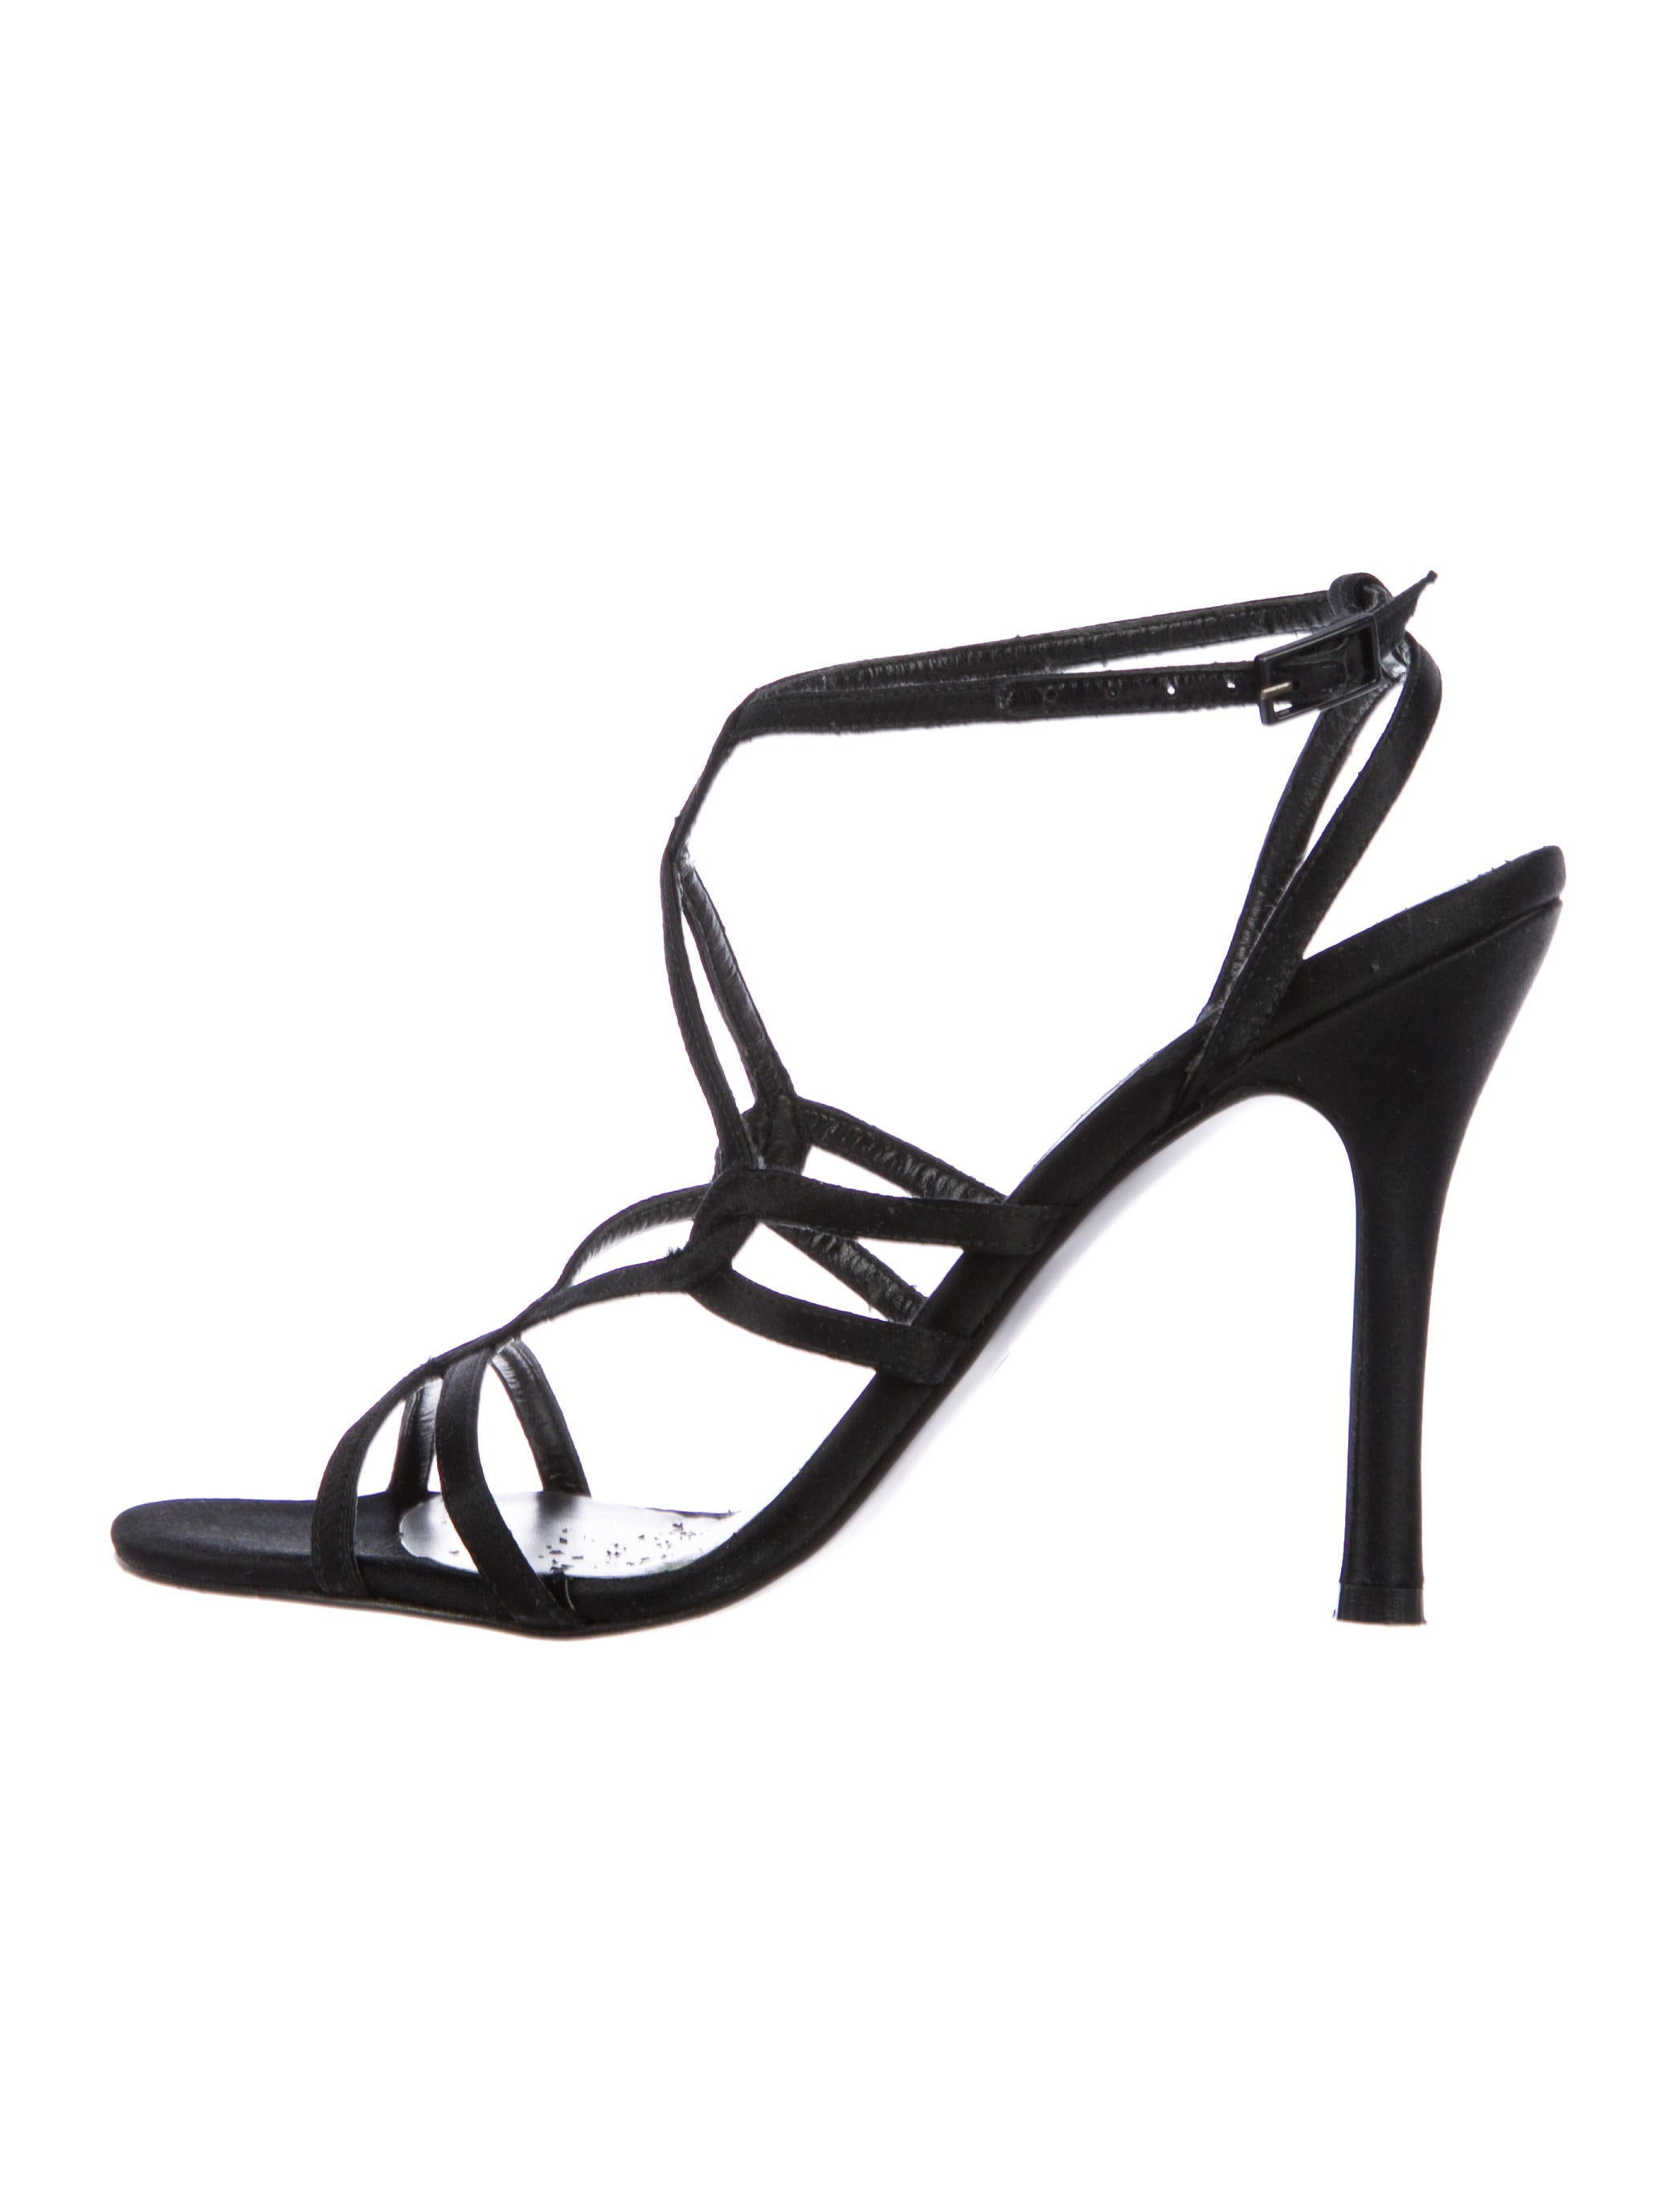 Stuart Weitzman Satin Caged Sandals cheap authentic outlet sale factory outlet cheap sneakernews best store to get for sale buy cheap find great OoWxQ9eJu1